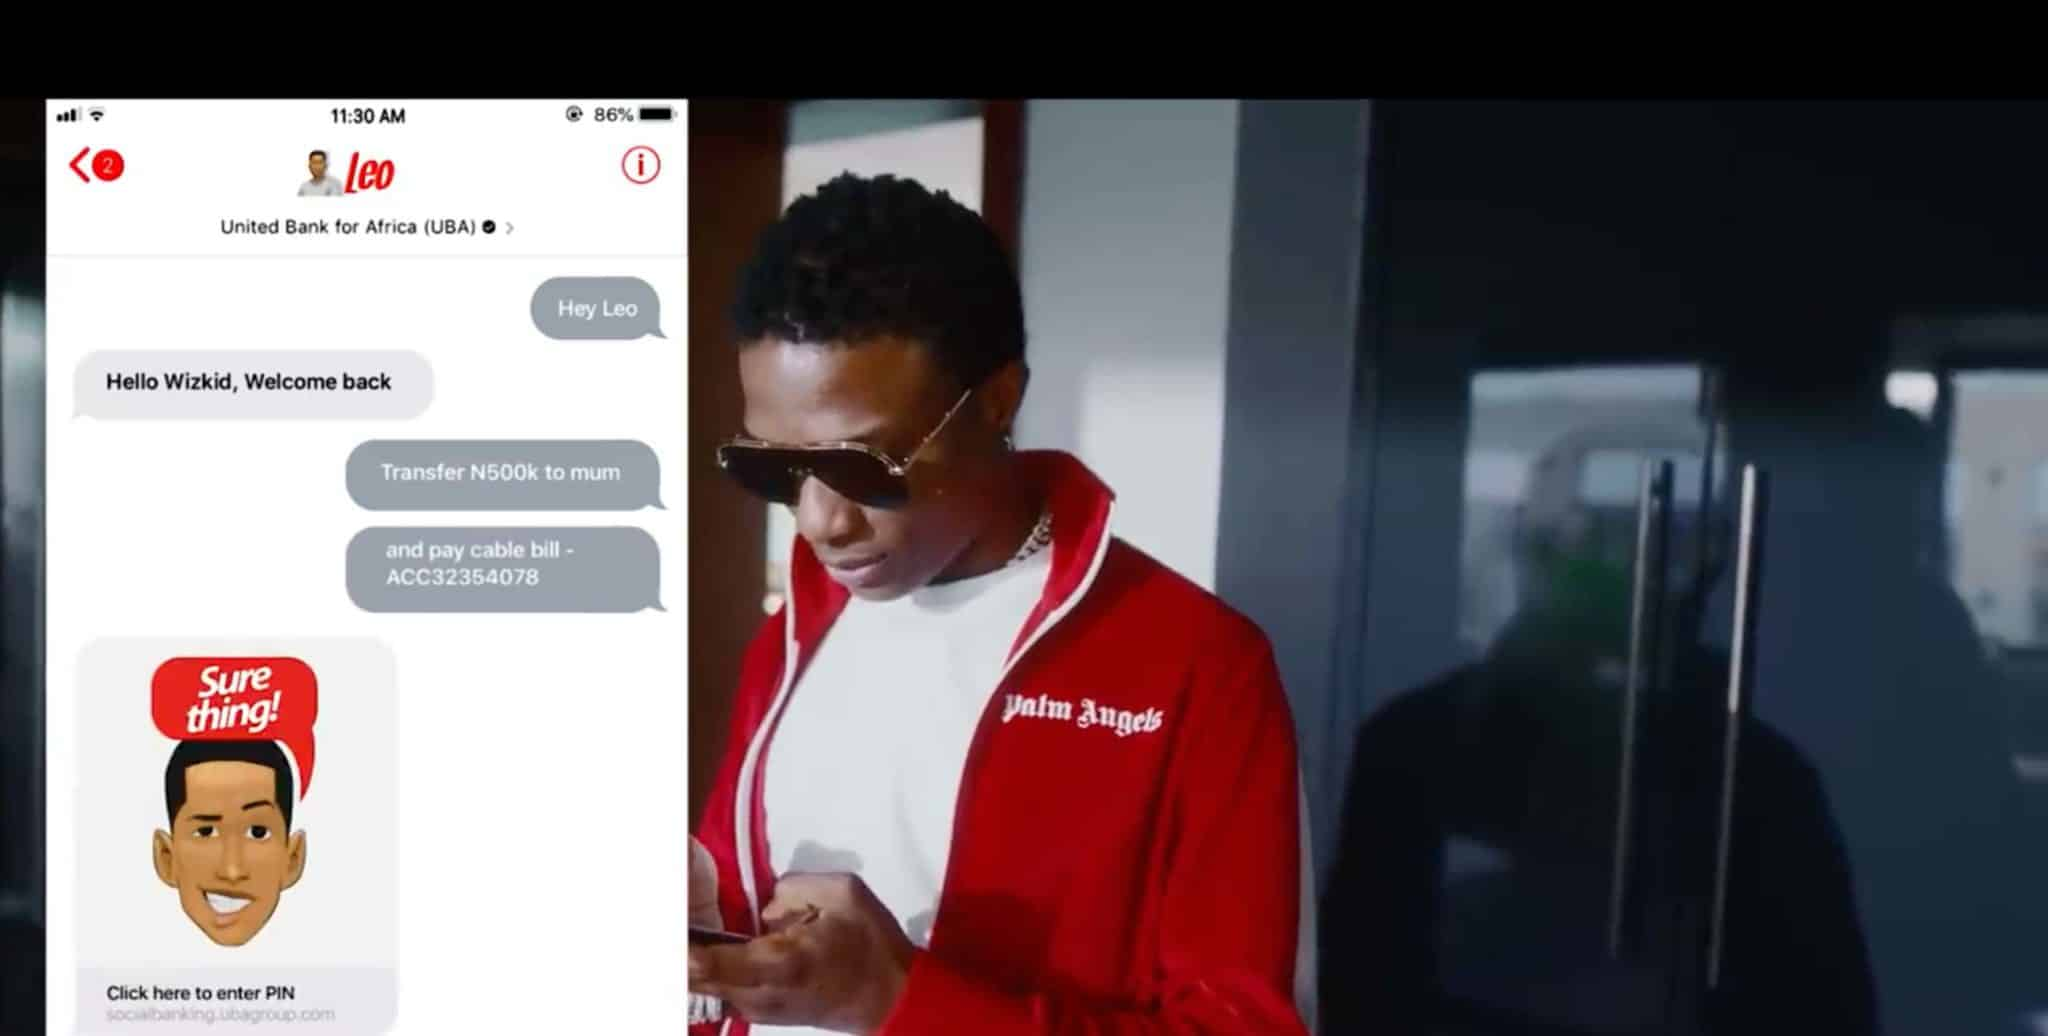 Meet Wizkid's new best friend and personal assistant LEO